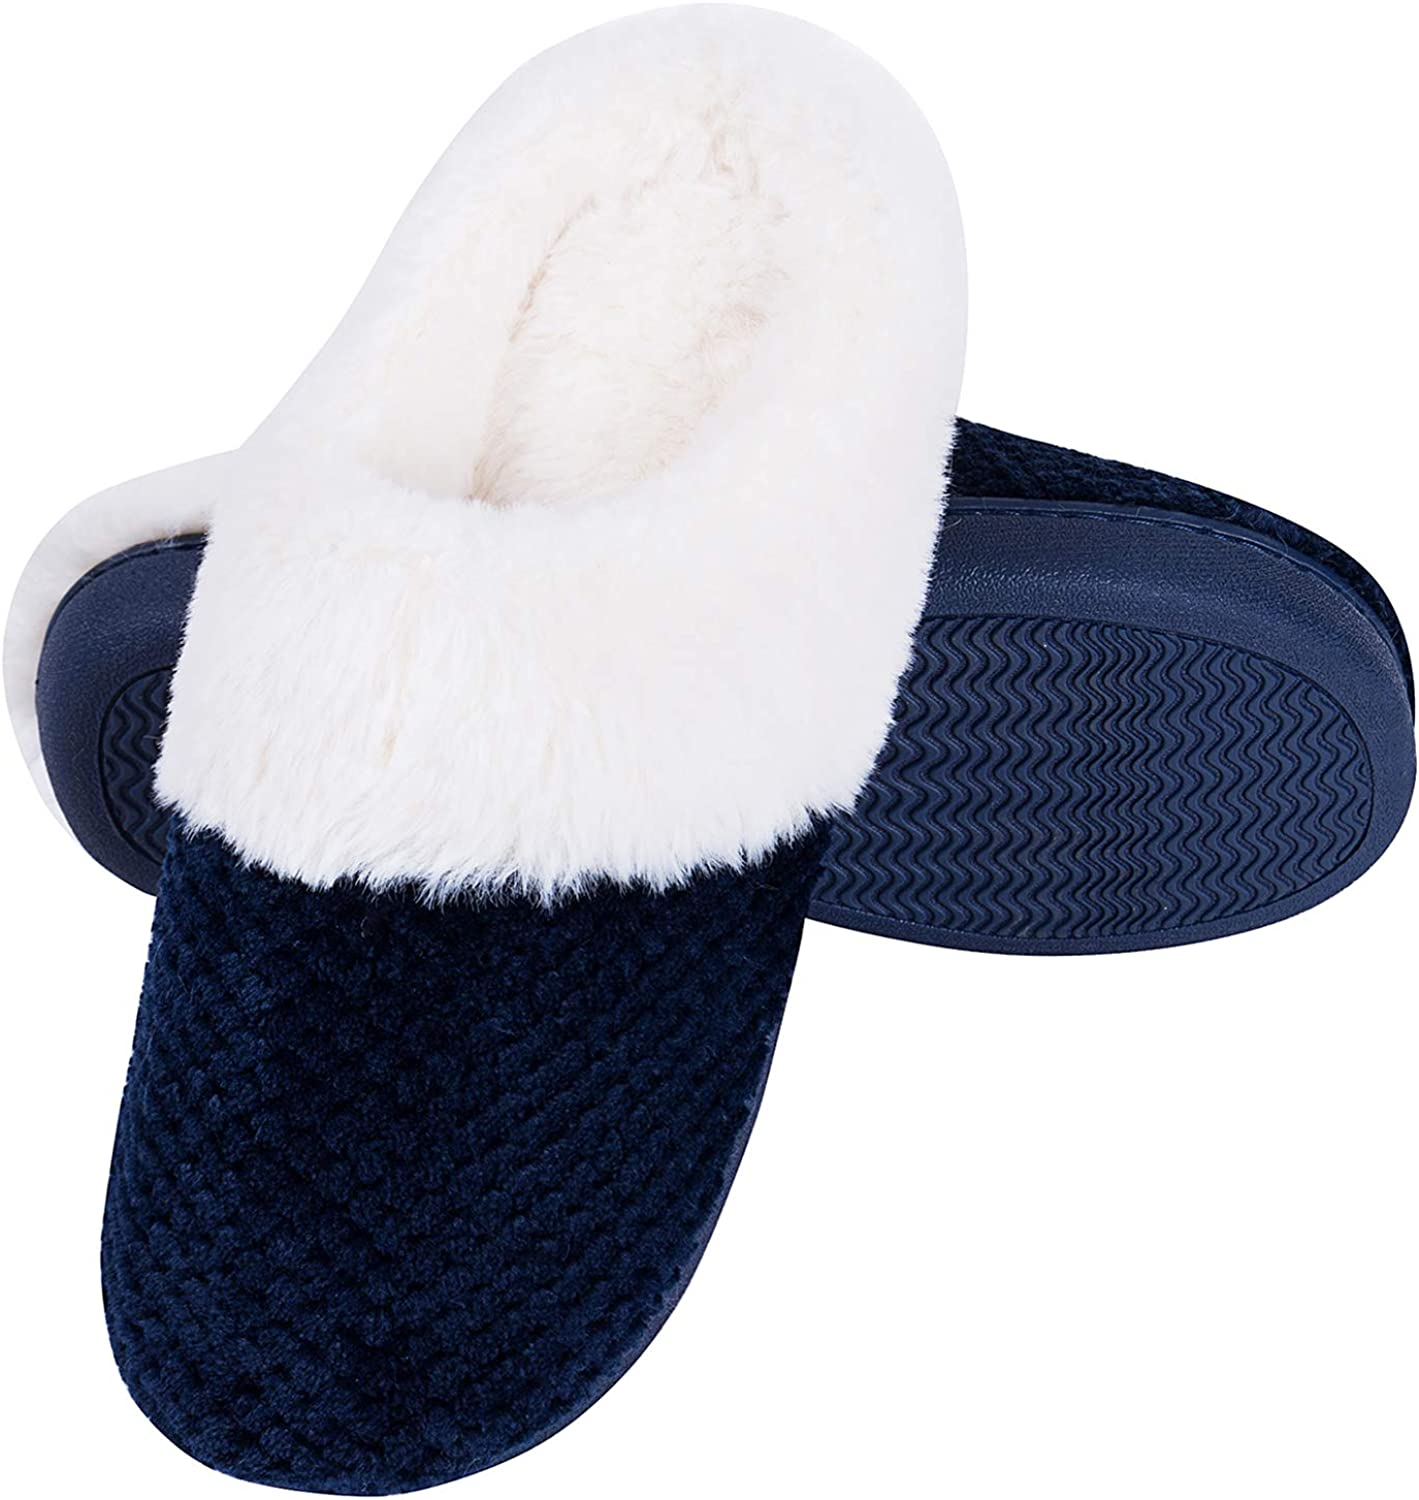 Temi Women's Soft Warm Memory Foam Slippers, Faux Fur Lined Fluffy Slip On House Bedroom Slippers with Indoor Outdoor Anti-Skid Rubber Sole